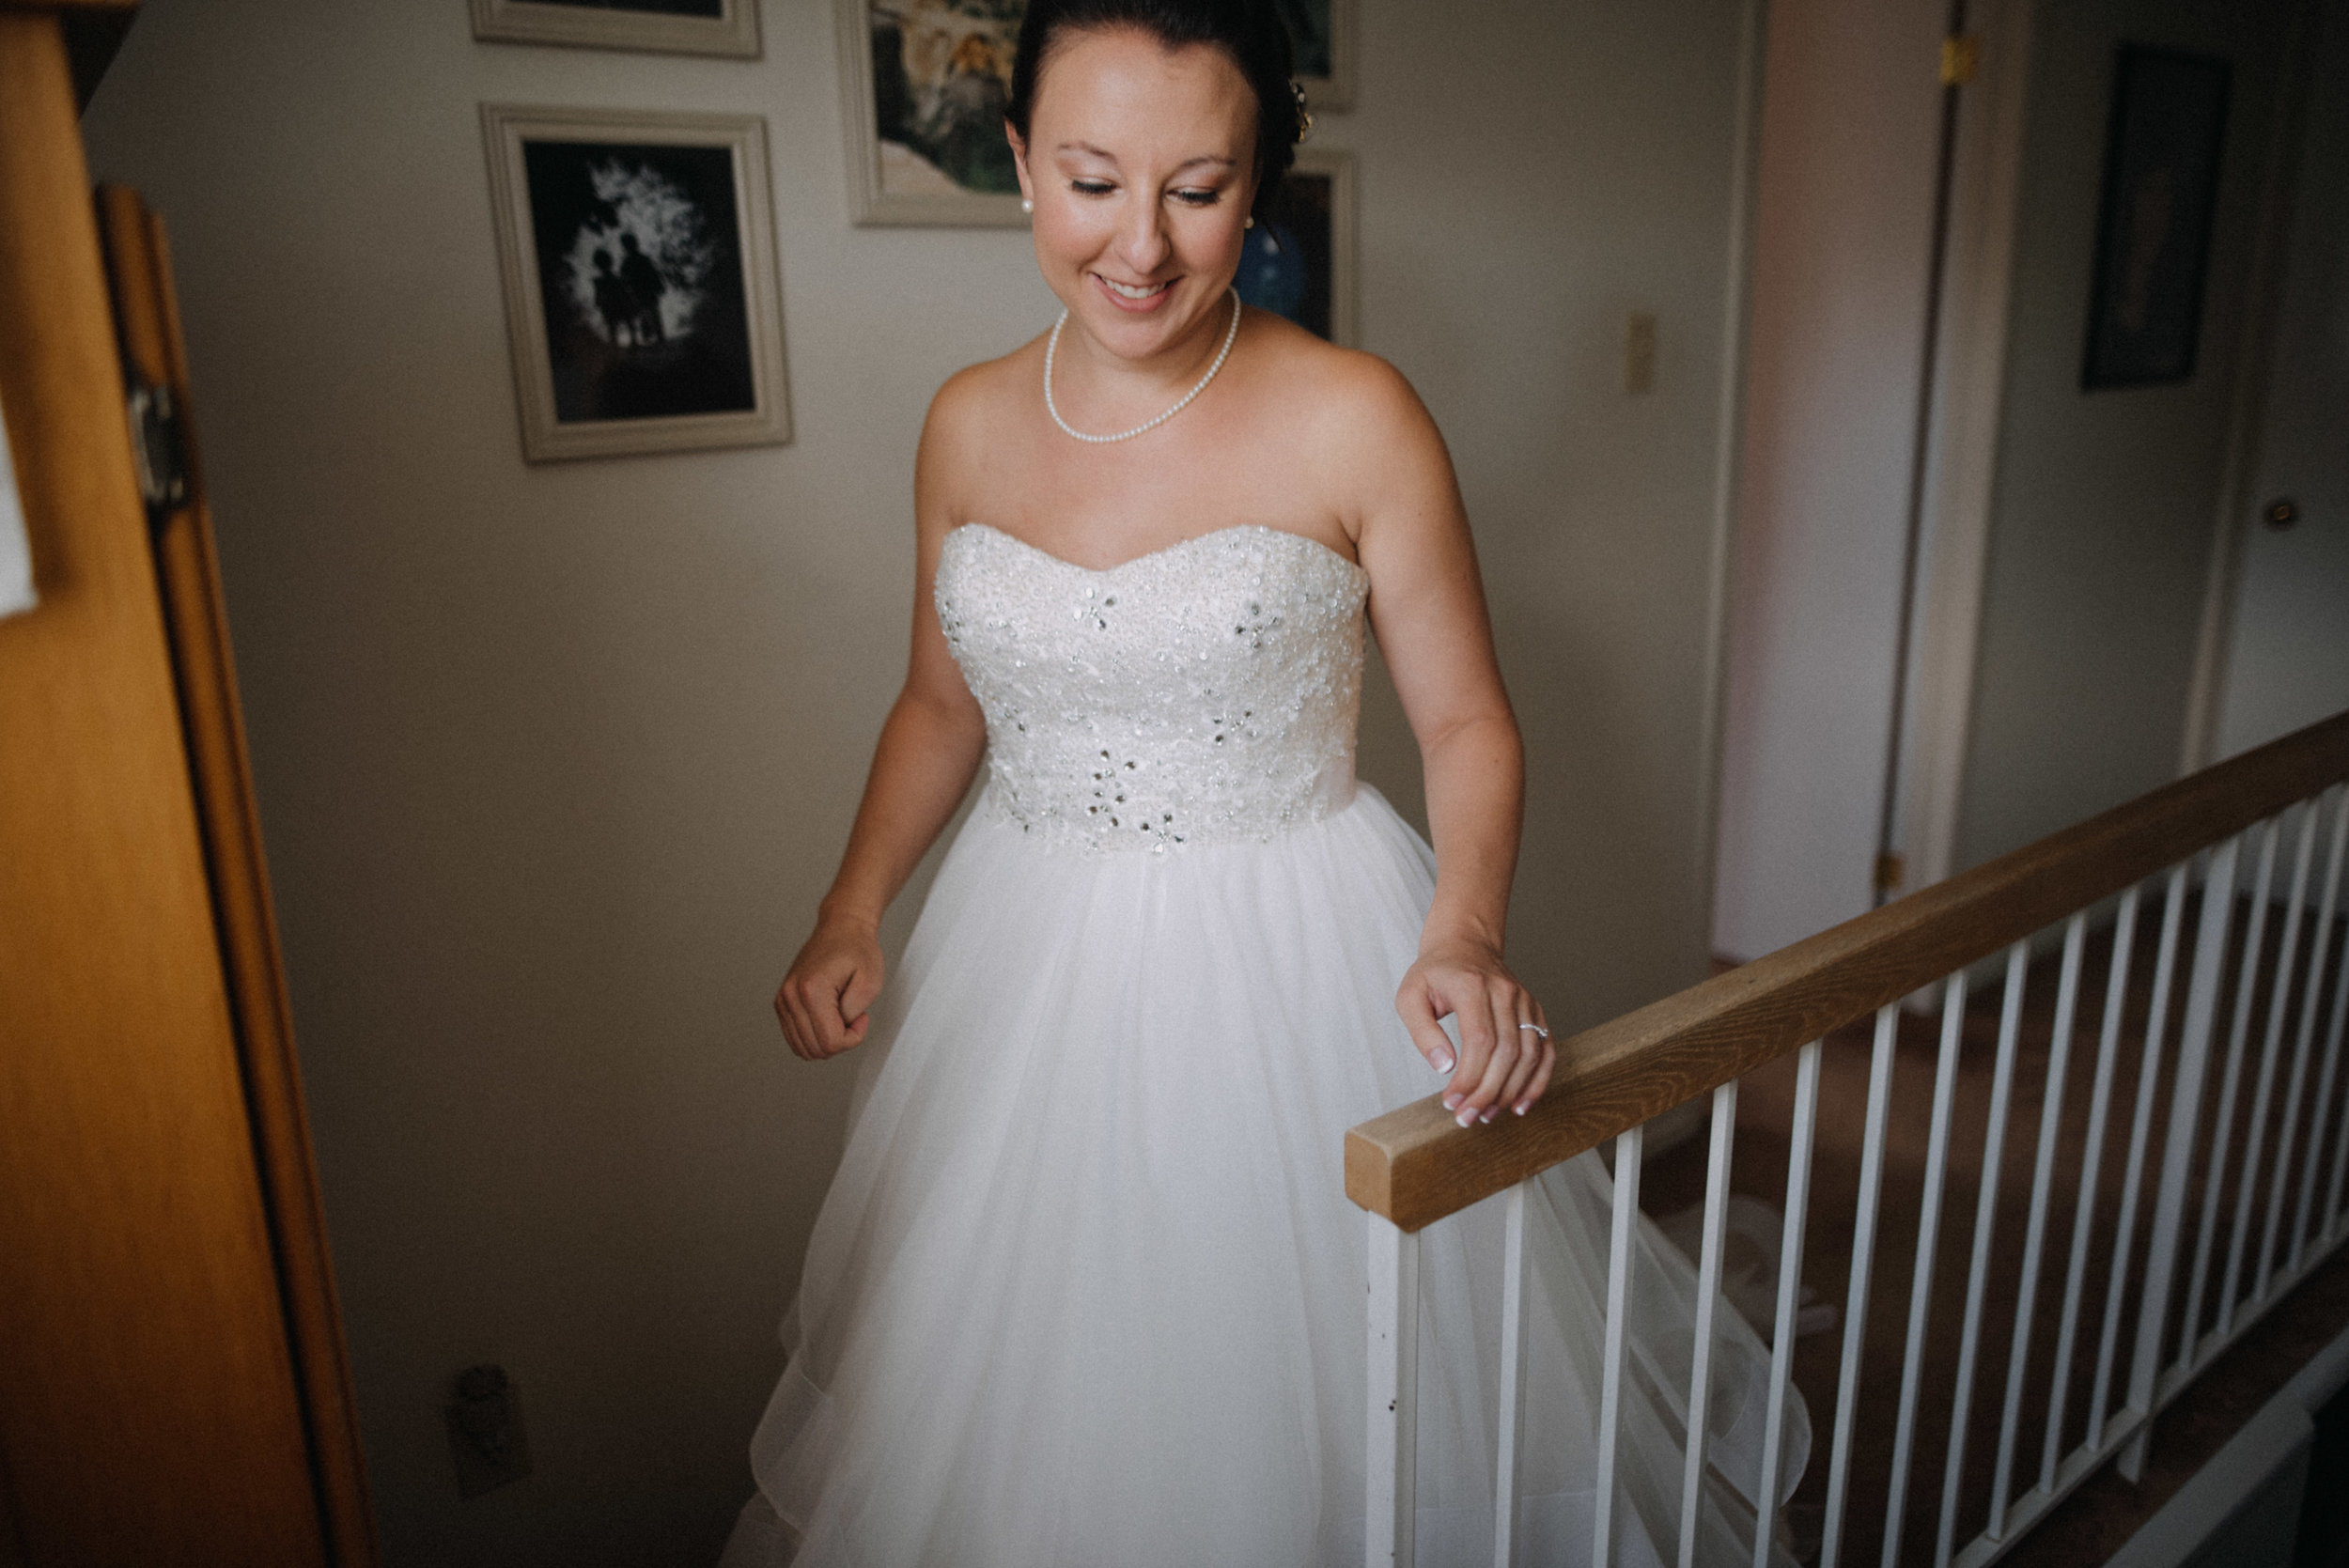 photographe_gatineau_mariage_ottawa_photographer_wedding_natasha_liard_photo_documentary_candid_lifestyle (2).jpg